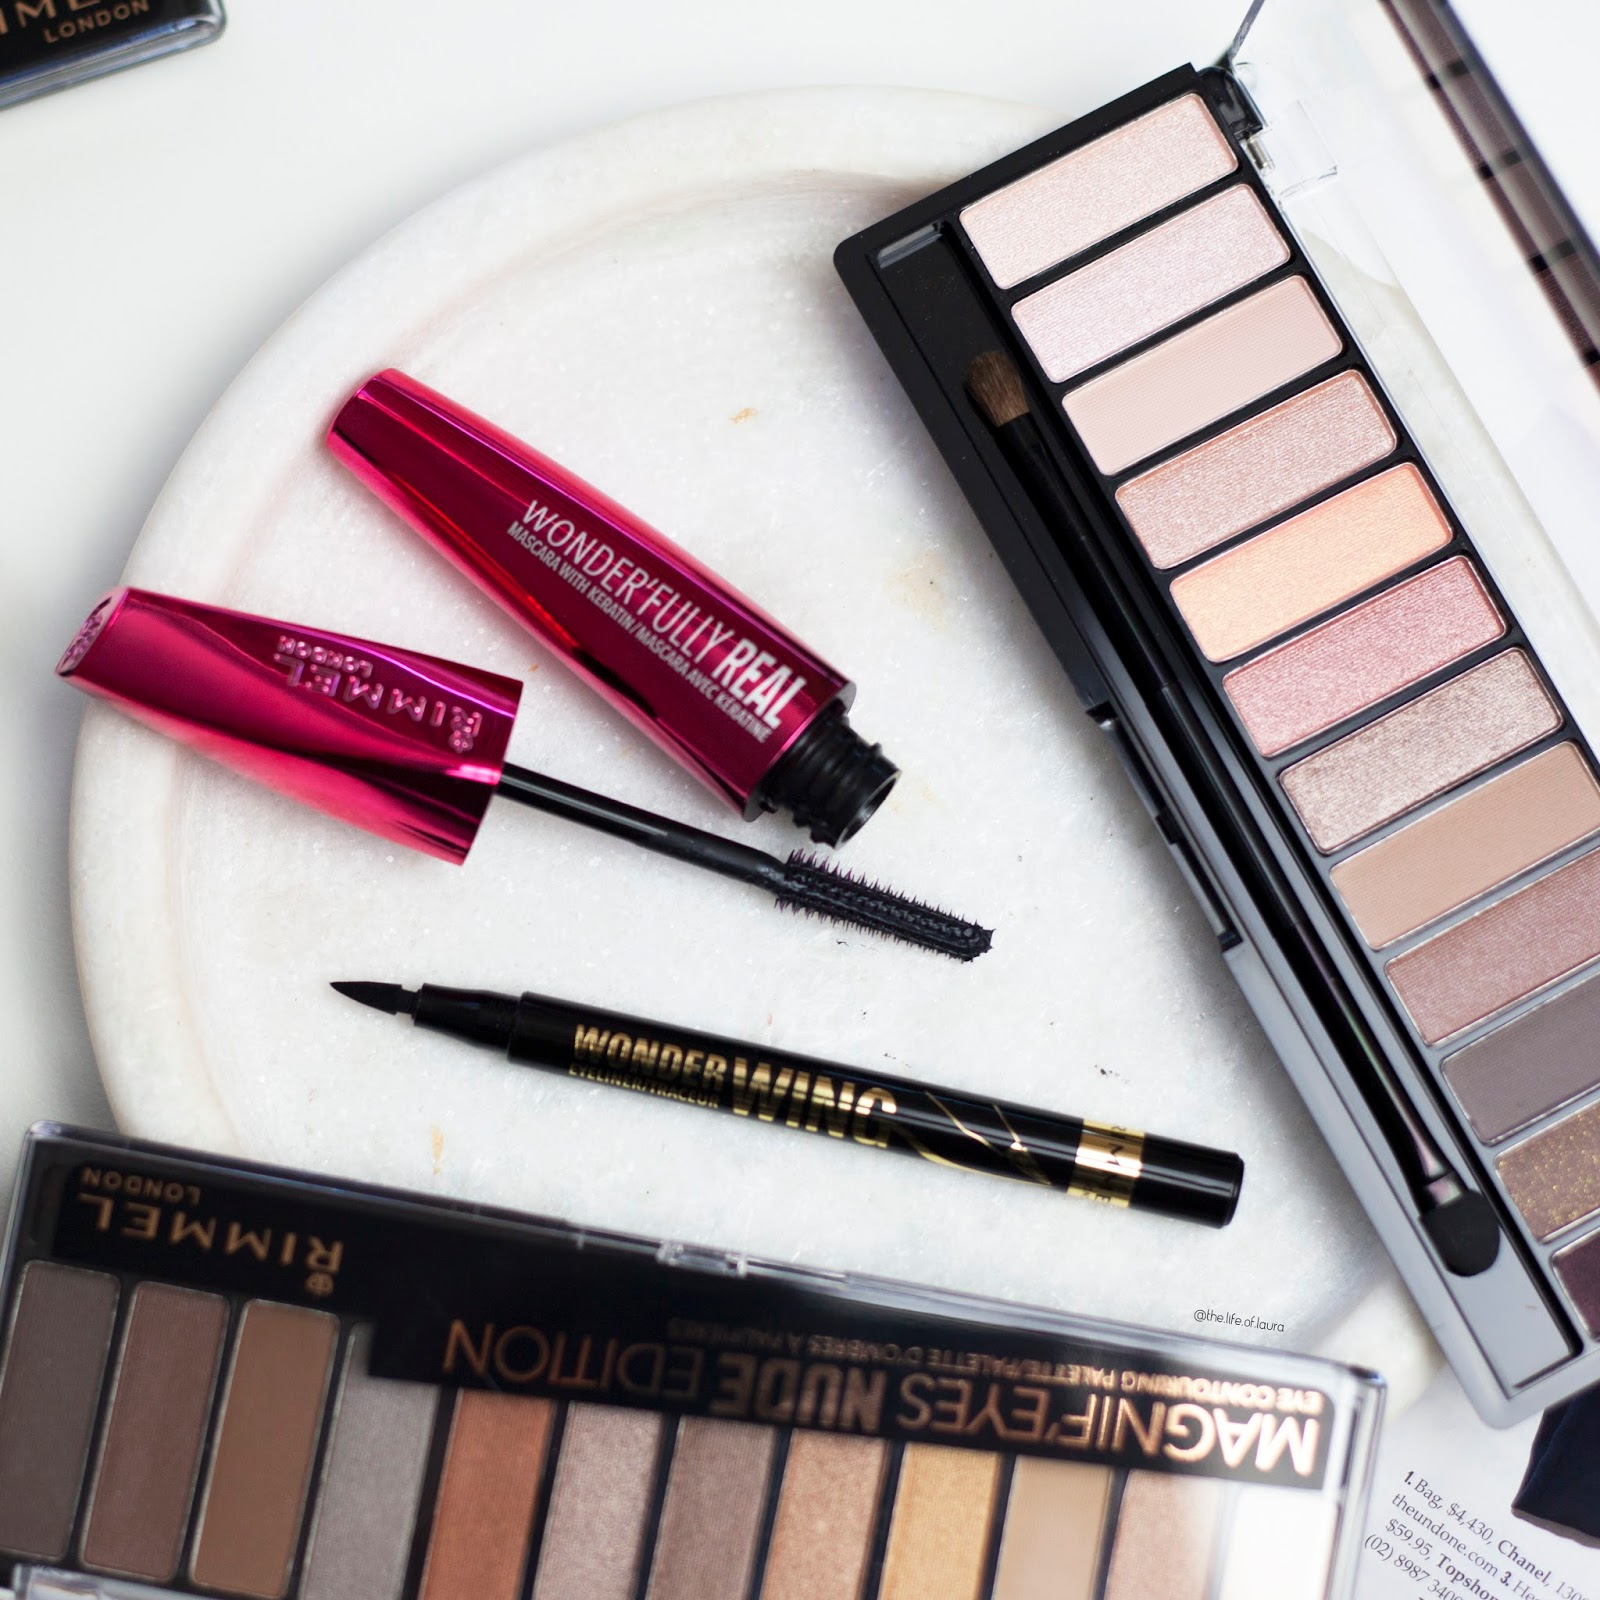 Rimmel London New Eye Products